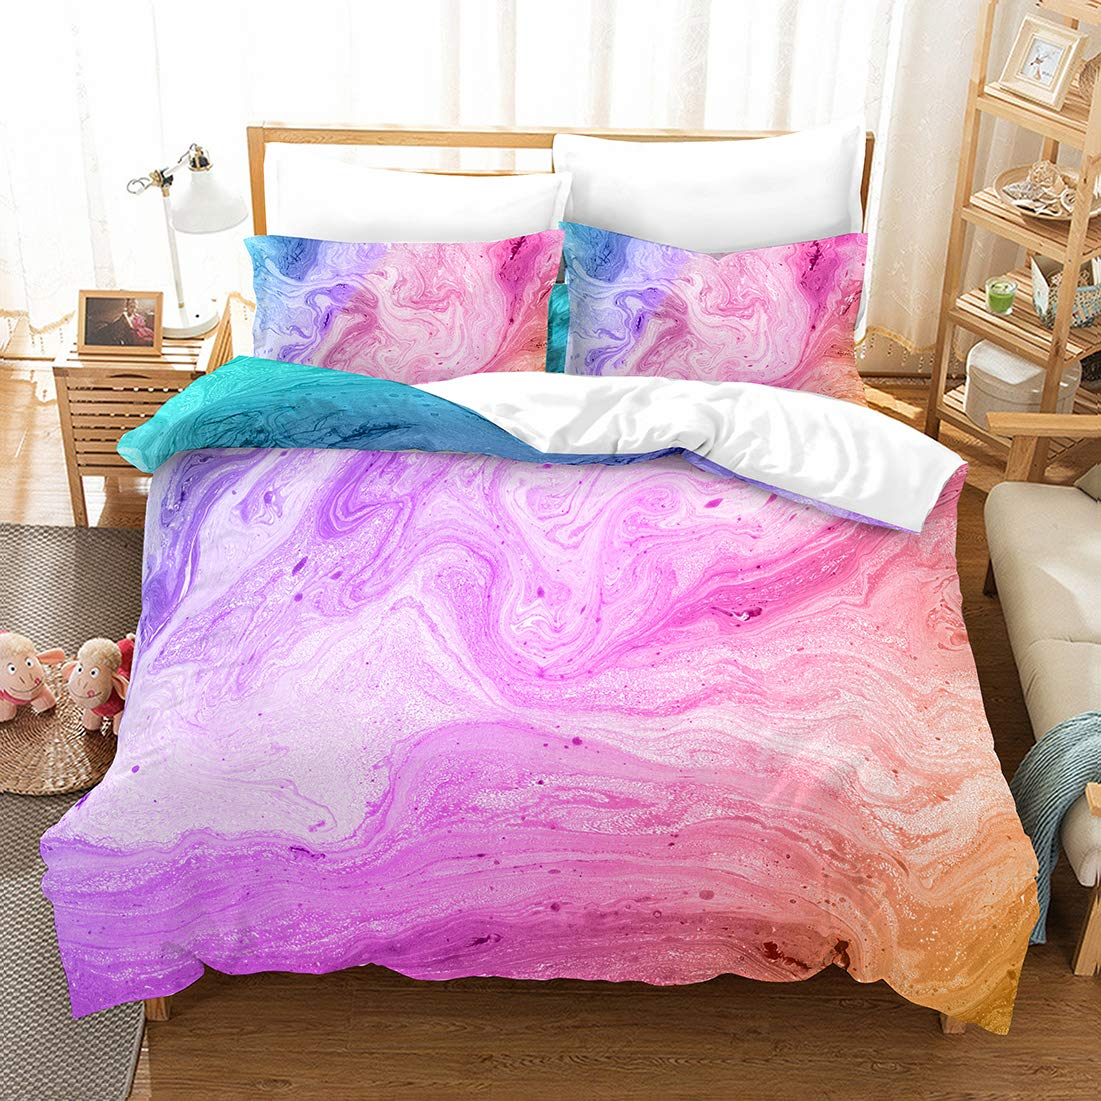 Watercolor Marble Bedding Marble Duvet Cover Set Pink Blue Abstract Marbling Texture Design Teens Boys Girls Bedding Sets Queen (90x90) 1 Duvet Cover 2 Pillowcases (Marble, Queen)